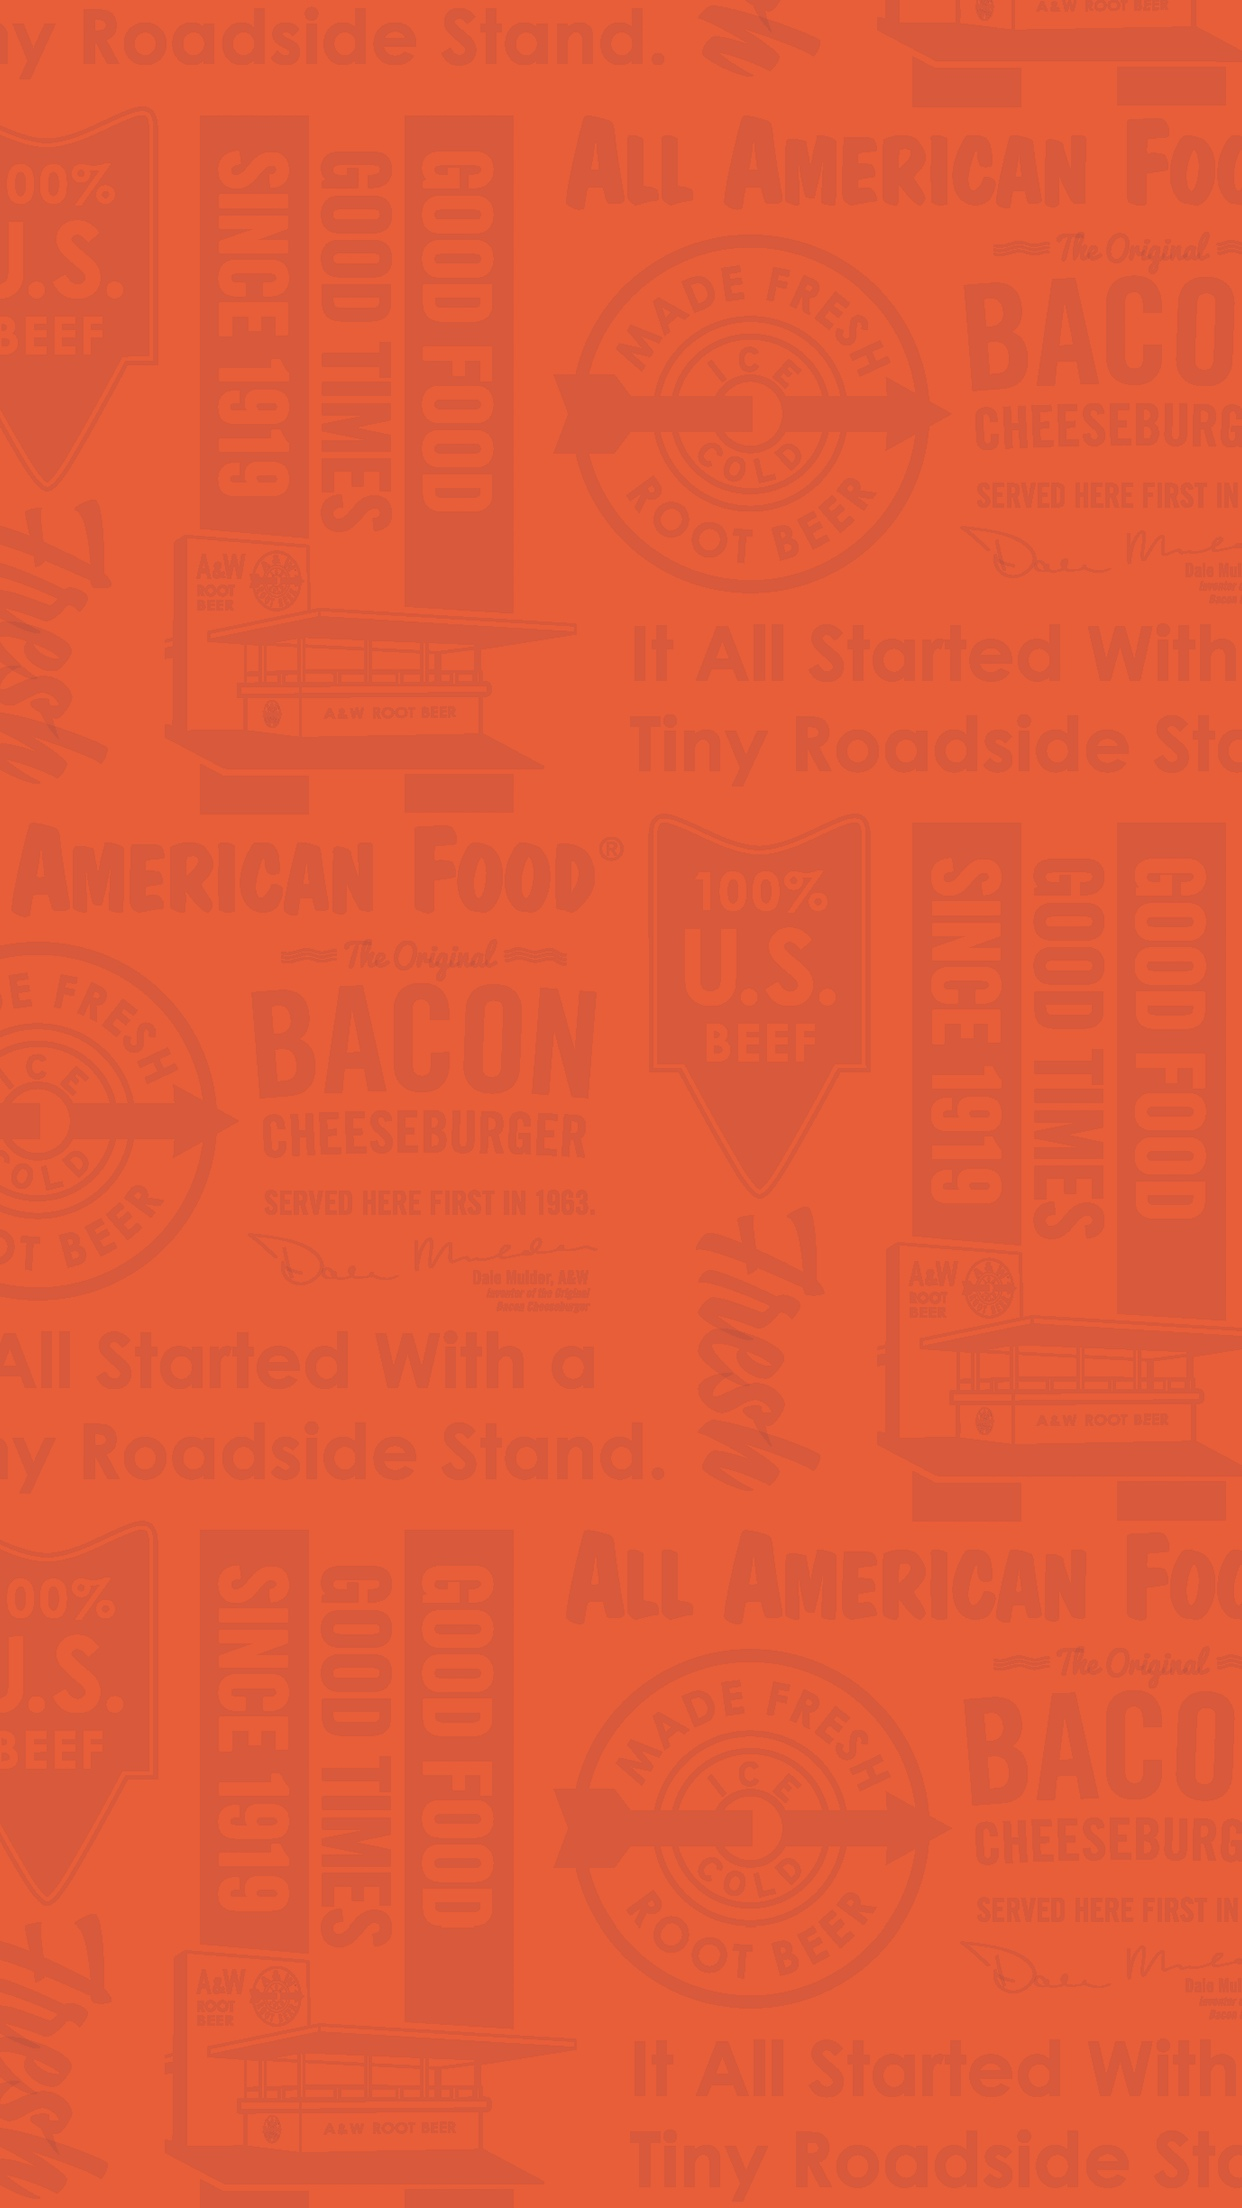 Orange phone wallpaper with A&W Restaurants logo, 'It all started with a roadside stand' text, Original Bacon Cheeseburger text